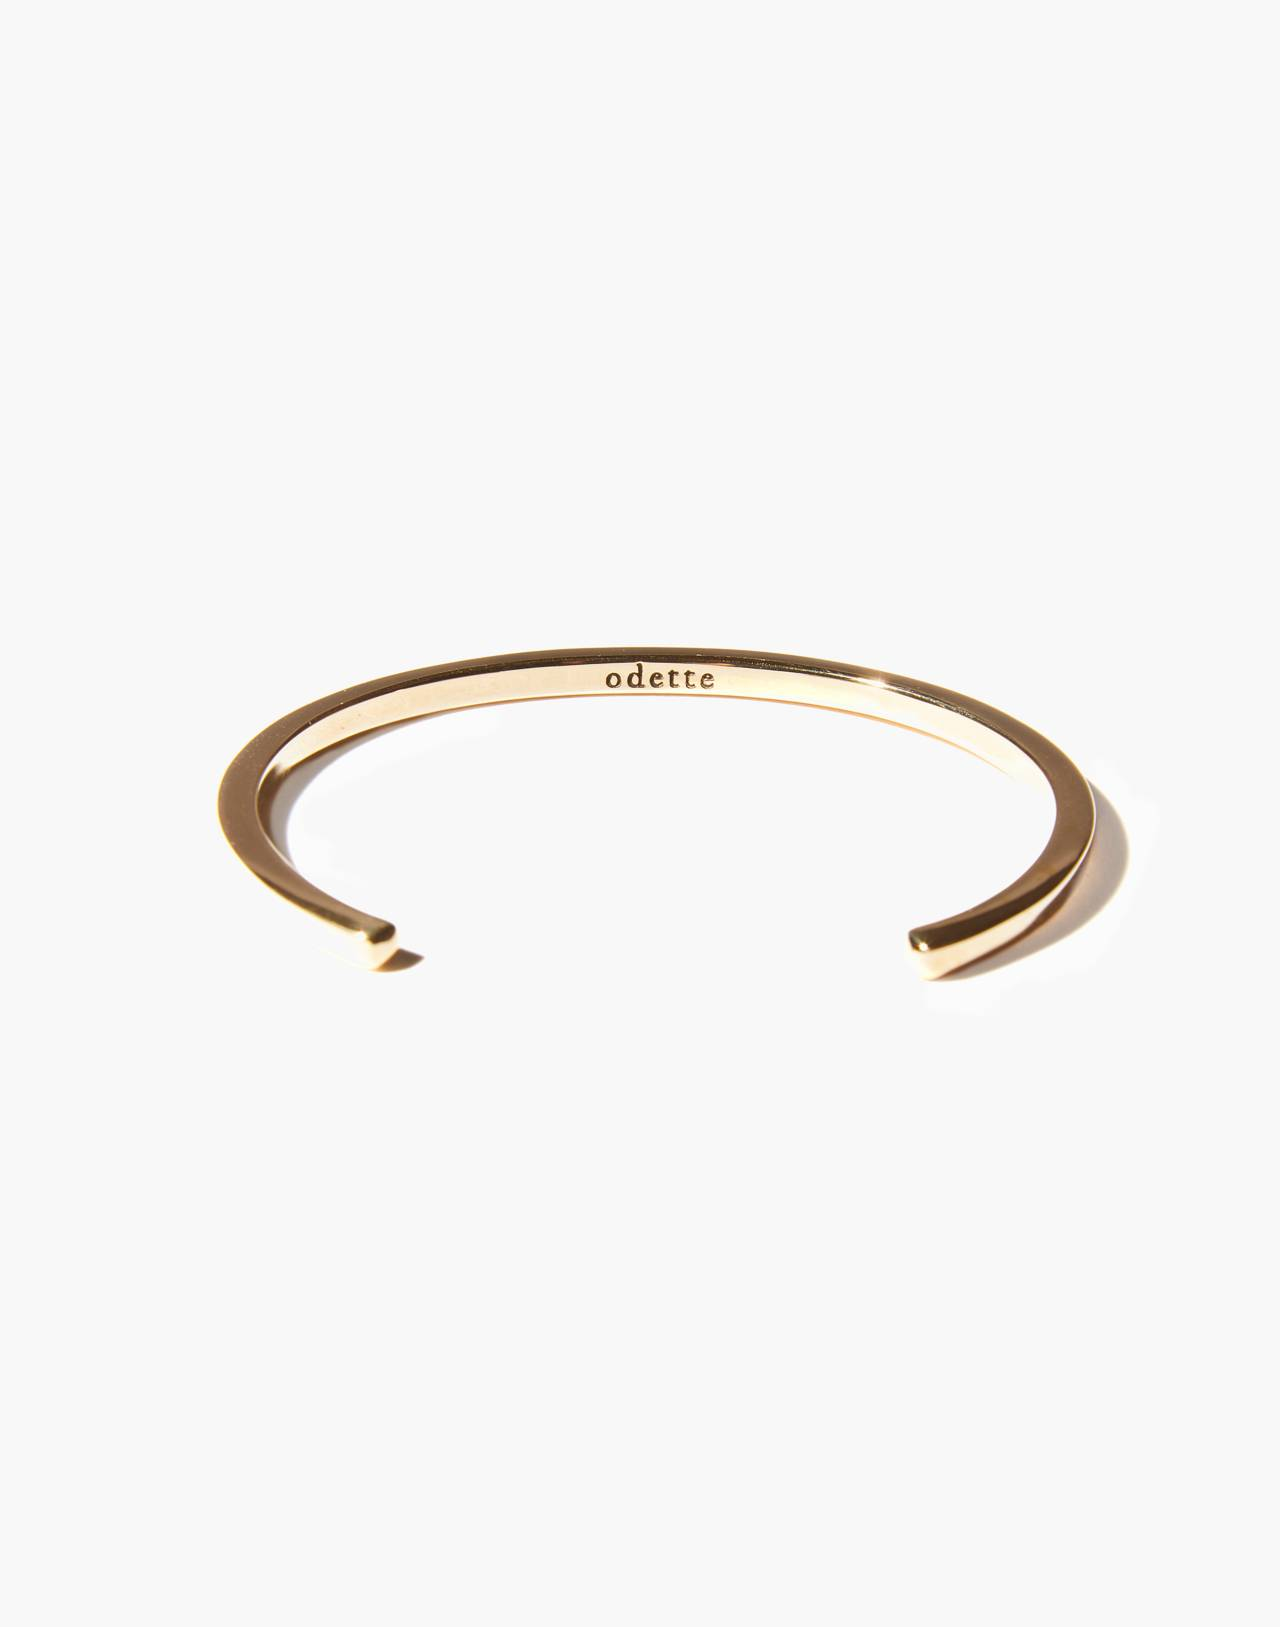 Odette New York® Square Cuff Bracelet in gold image 2